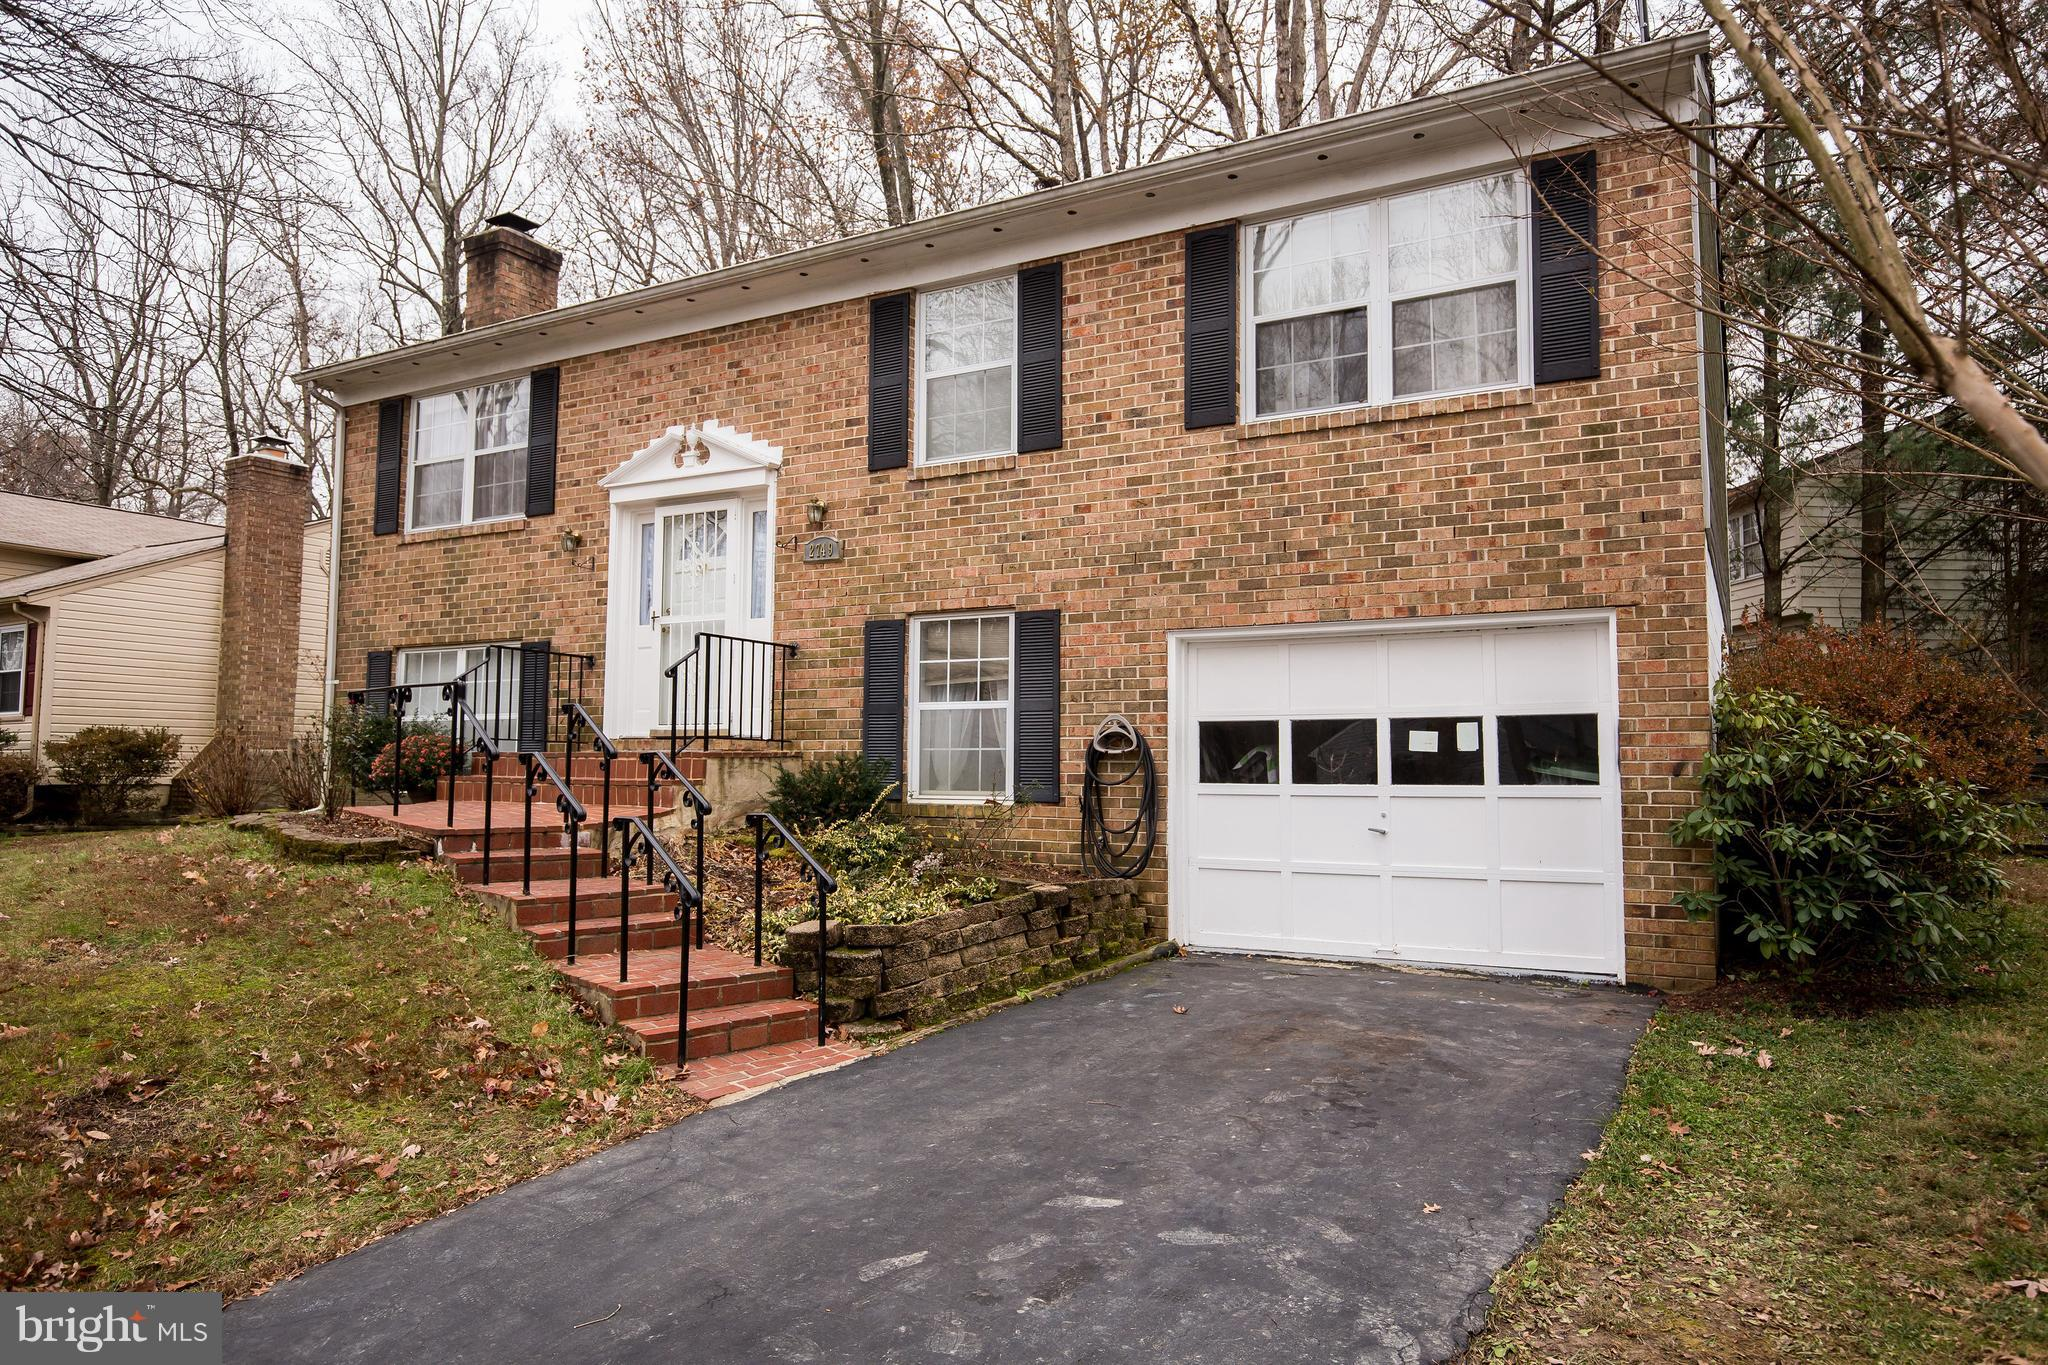 BACK ON MARKET!  BUYER FINANCING FELL THROUGH! 1697 SQFT - AS OF 1/11/19 OFFERING BRAND NEW ROOF REPLACEMENT AND HVAC REPLACEMENT WITH FULL OFFER!!! $15,000 VALUE!! IF CONTRACT PLACED BY 1/25/19. MOTIVATION, MOTIVATION, MOTIVATION!!  SPECTACULAR SPLIT FOYER - 4 BEDROOM - 3 BATH HOME -WIDE OPEN FLOOR PLAN ON MAIN LEVEL - NEW STAINLESS APPLIANCES AND GRANITE! HARDWOOD FLOORS THROUGHOUT. GORGEOUS BATHROOMS! HUGE BACK YARD!! COMMUNITY POOL NEARBYE! SO MUCH VALUE FOR JUST 389K. NOW WITH NEW ROOF AND NEW HVAC INSTALL PRIOR TO SETTLEMENT!!